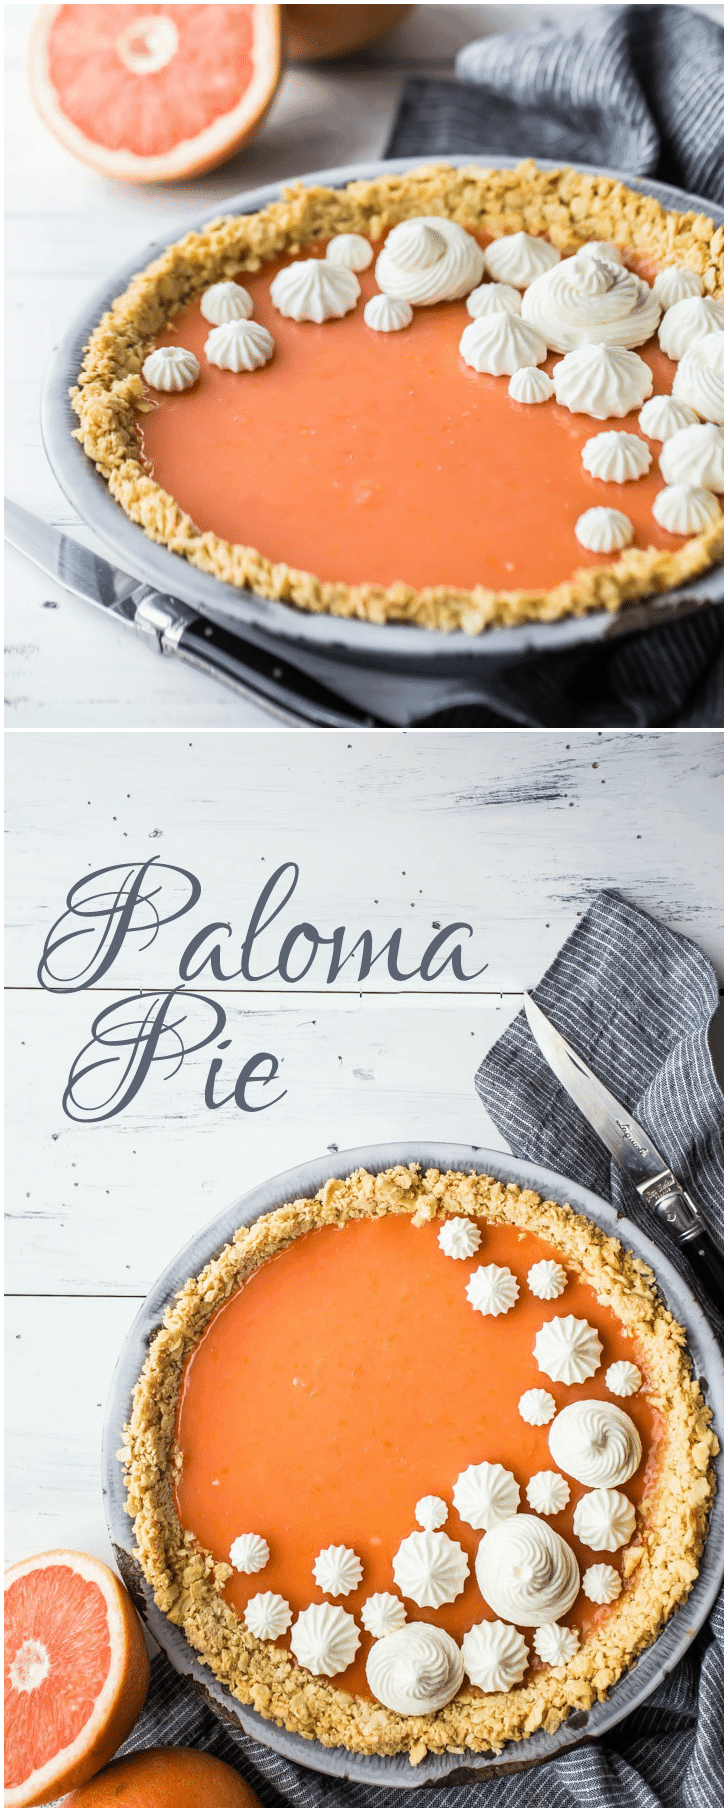 I made this Paloma Pie for Cinco de Mayo, and it was a huge hit! The tangy grapefruit-tequila filling was perfect with the crunchy saltine cracker crust.  Definitely making this again, it's so nice for summer!  #paloma #cocktail #drink #recipe #grapefruit #tequila #mexican #cincodemayo #pie #dessert #citrus #curd